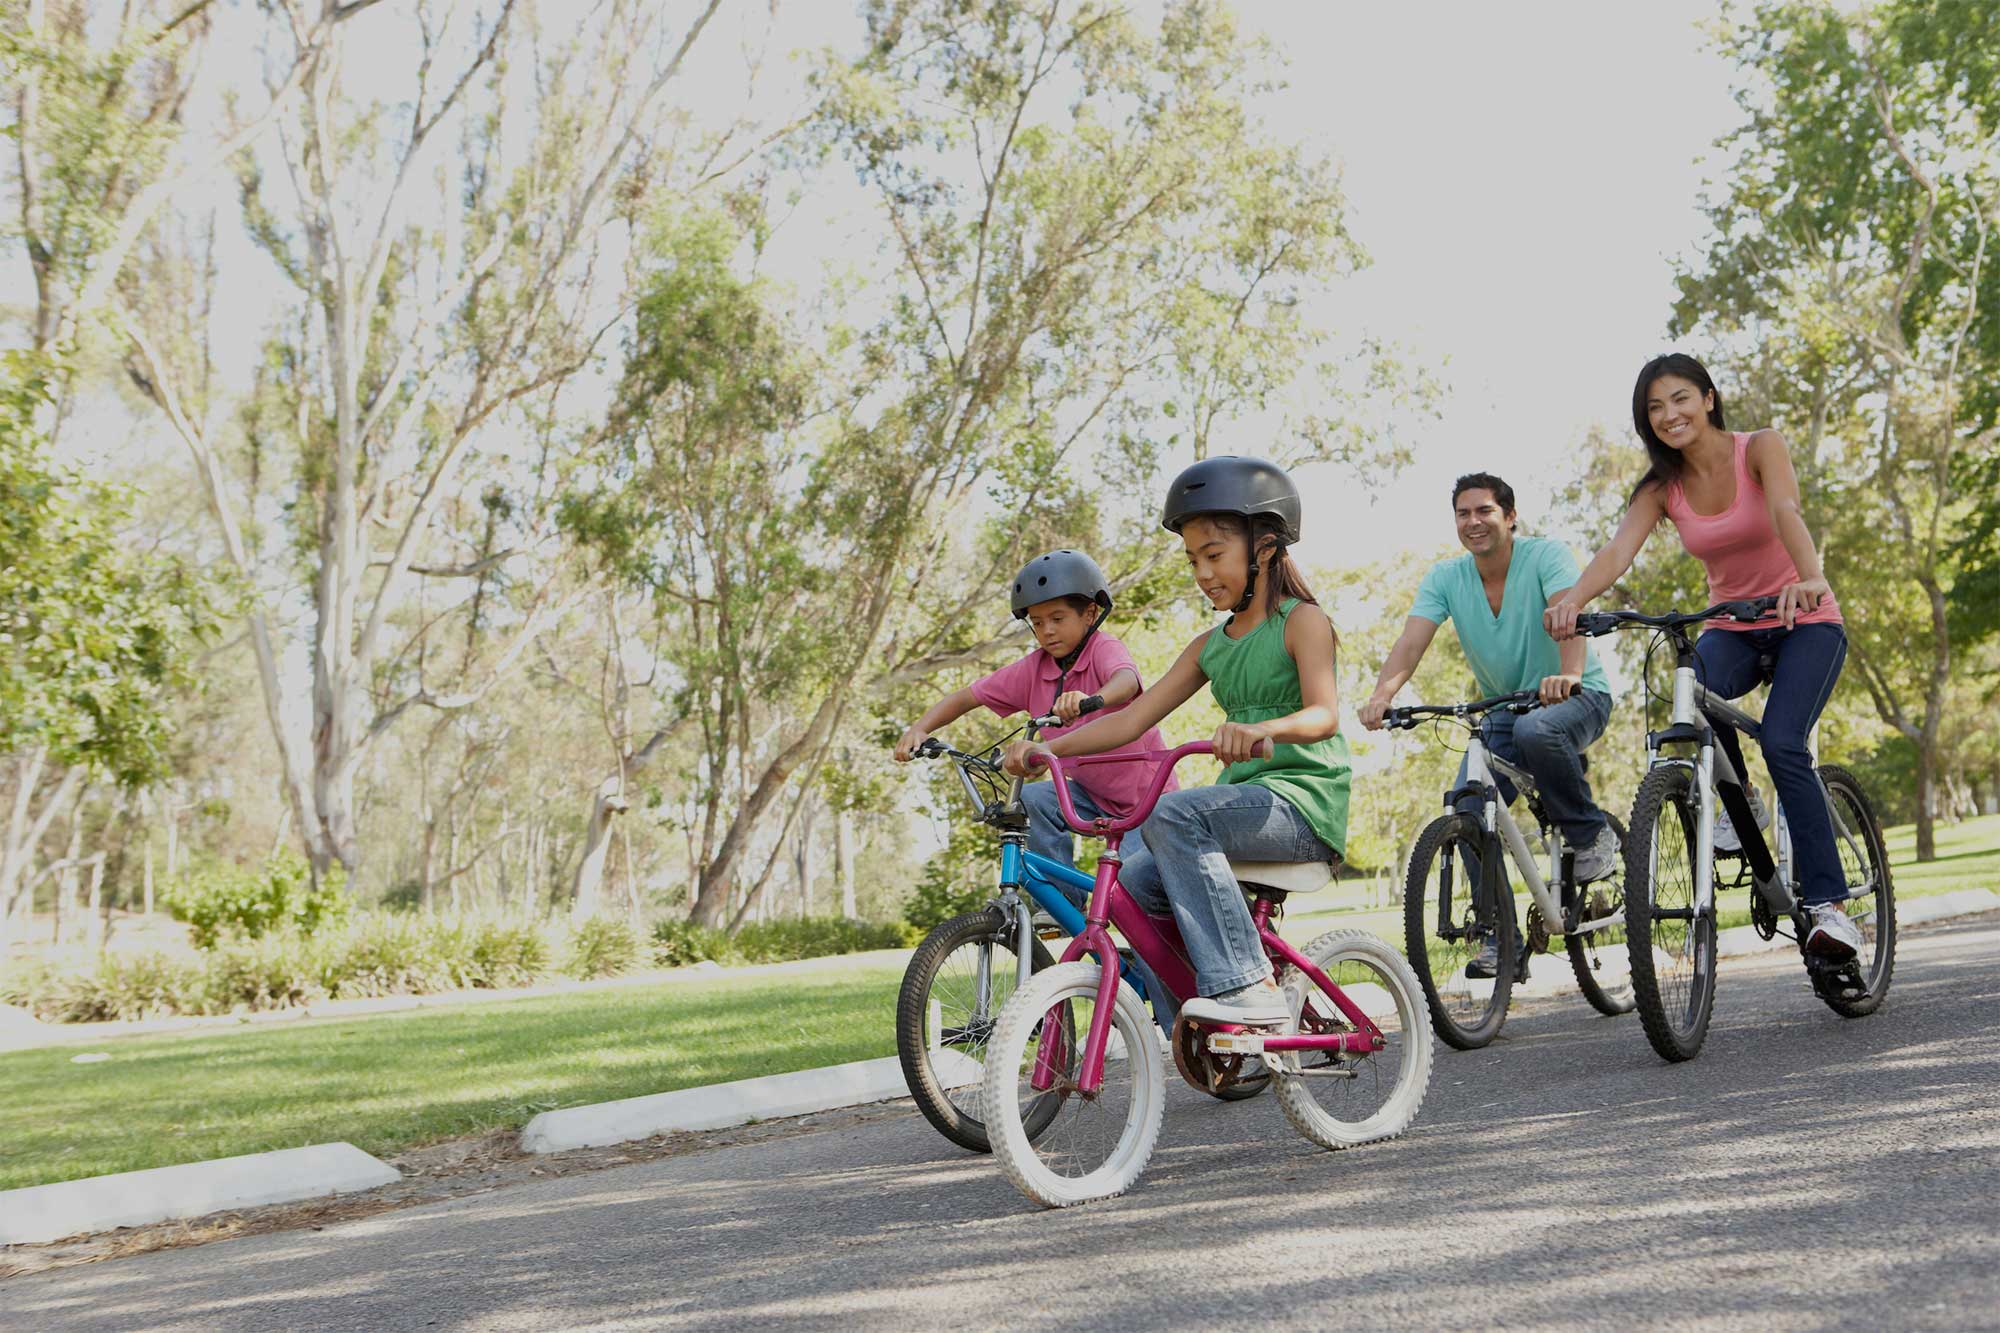 Family on bicycles riding through the park